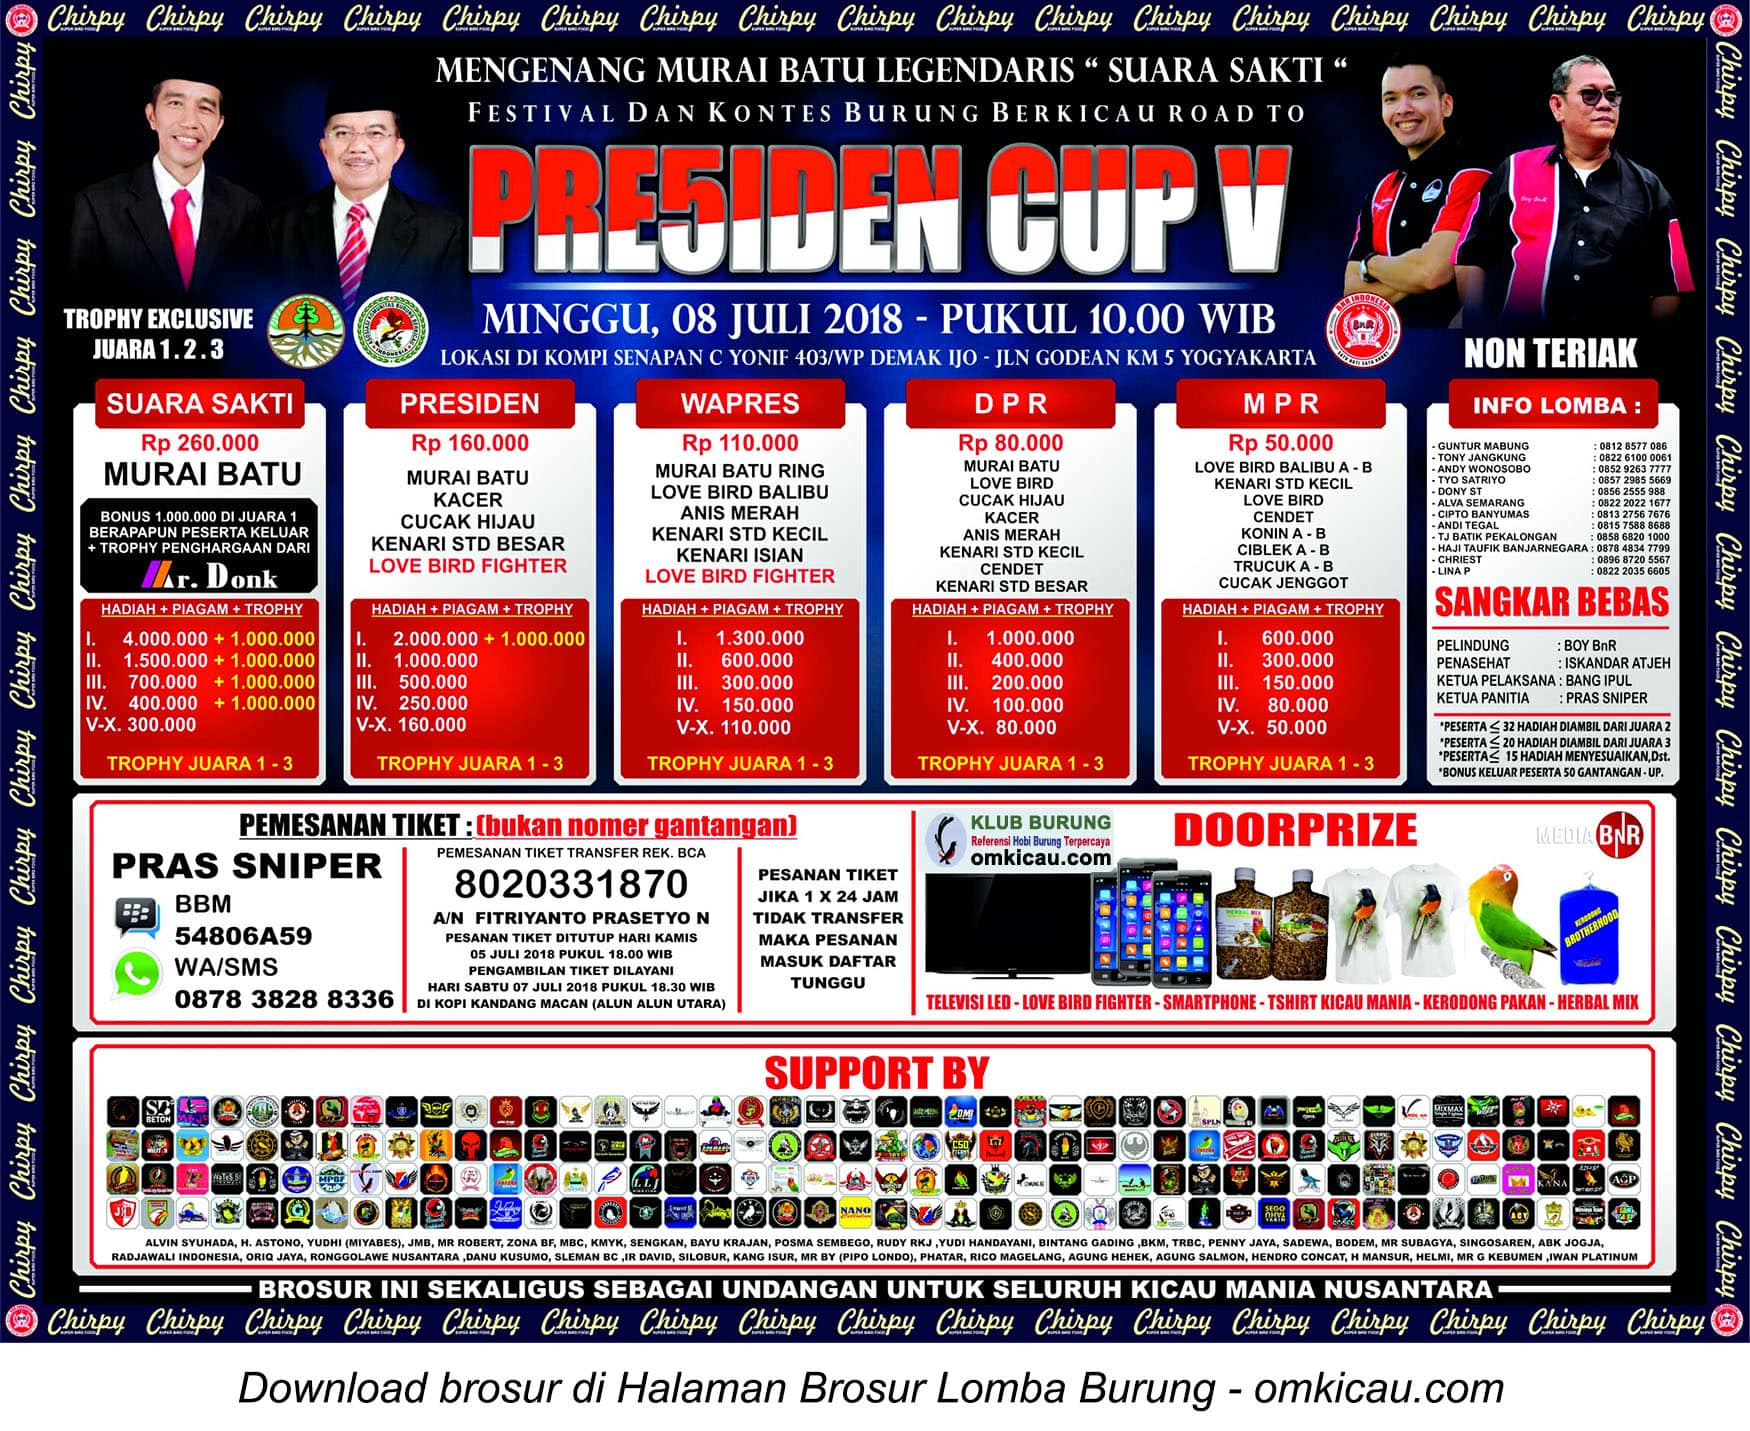 Road to Presiden Cup 5